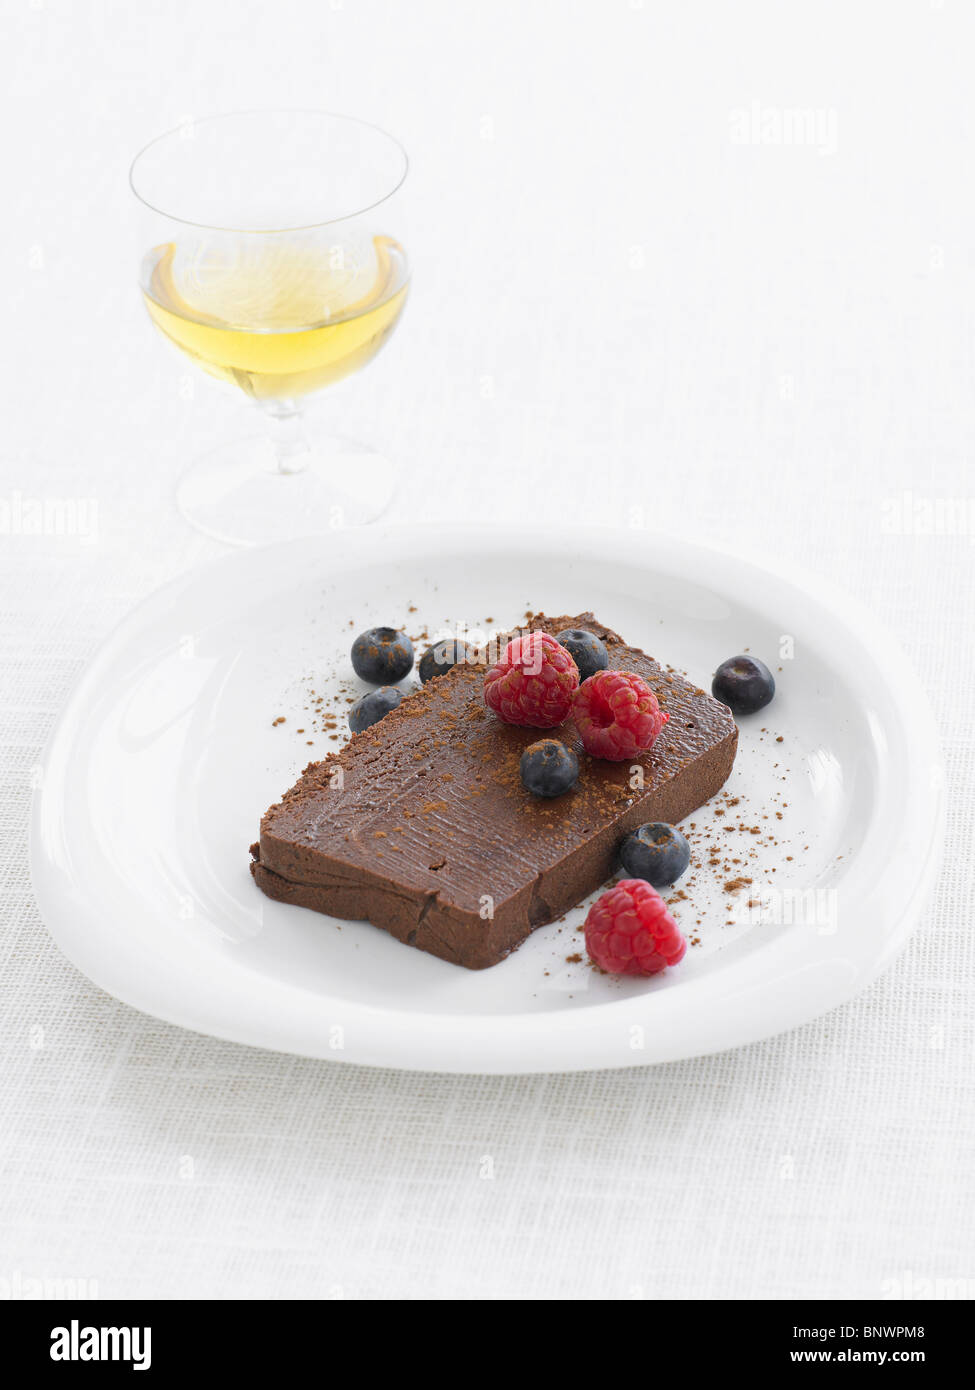 chocolate marquise - Stock Image